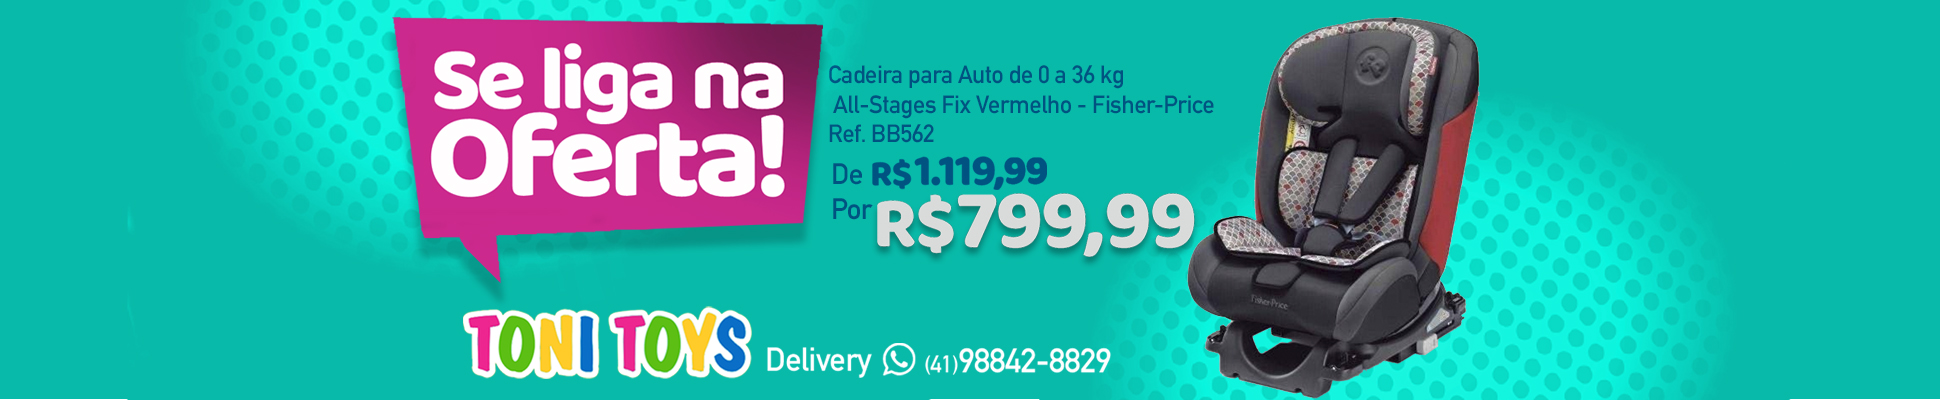 data/principal/banner-site-cadeira-fisher-toys-copia.jpg